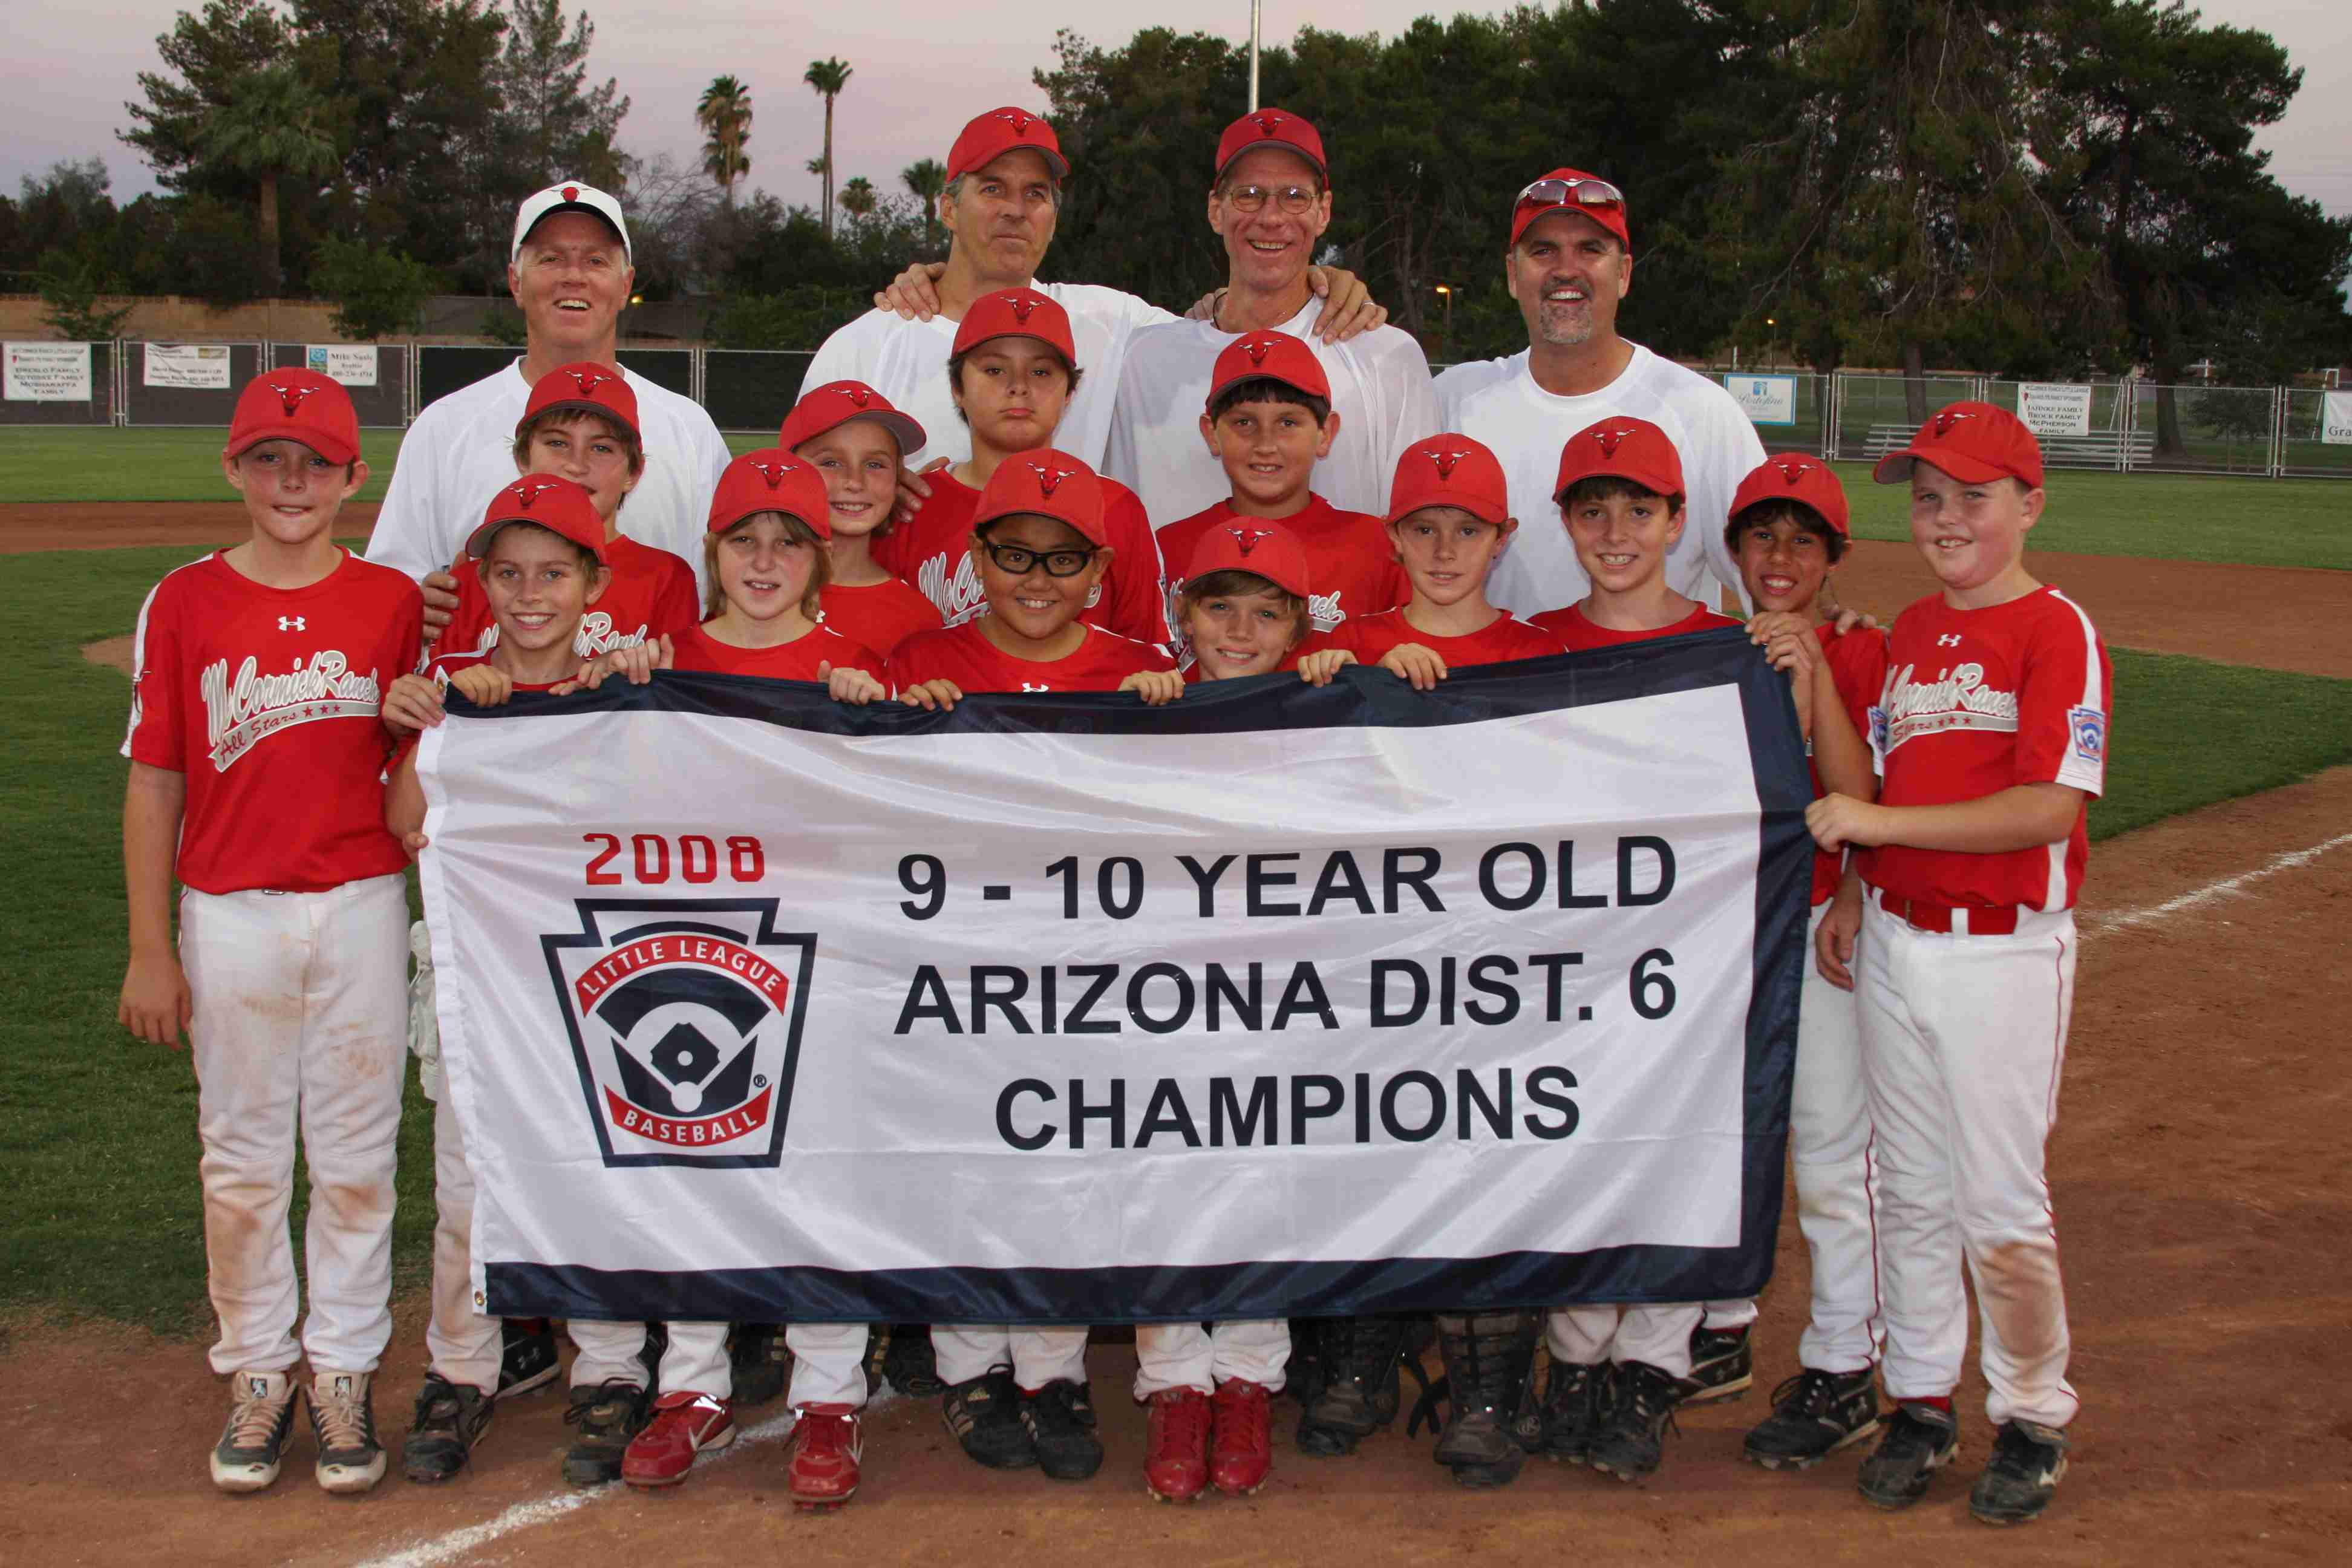 2008 MRLL 9-10s Champs